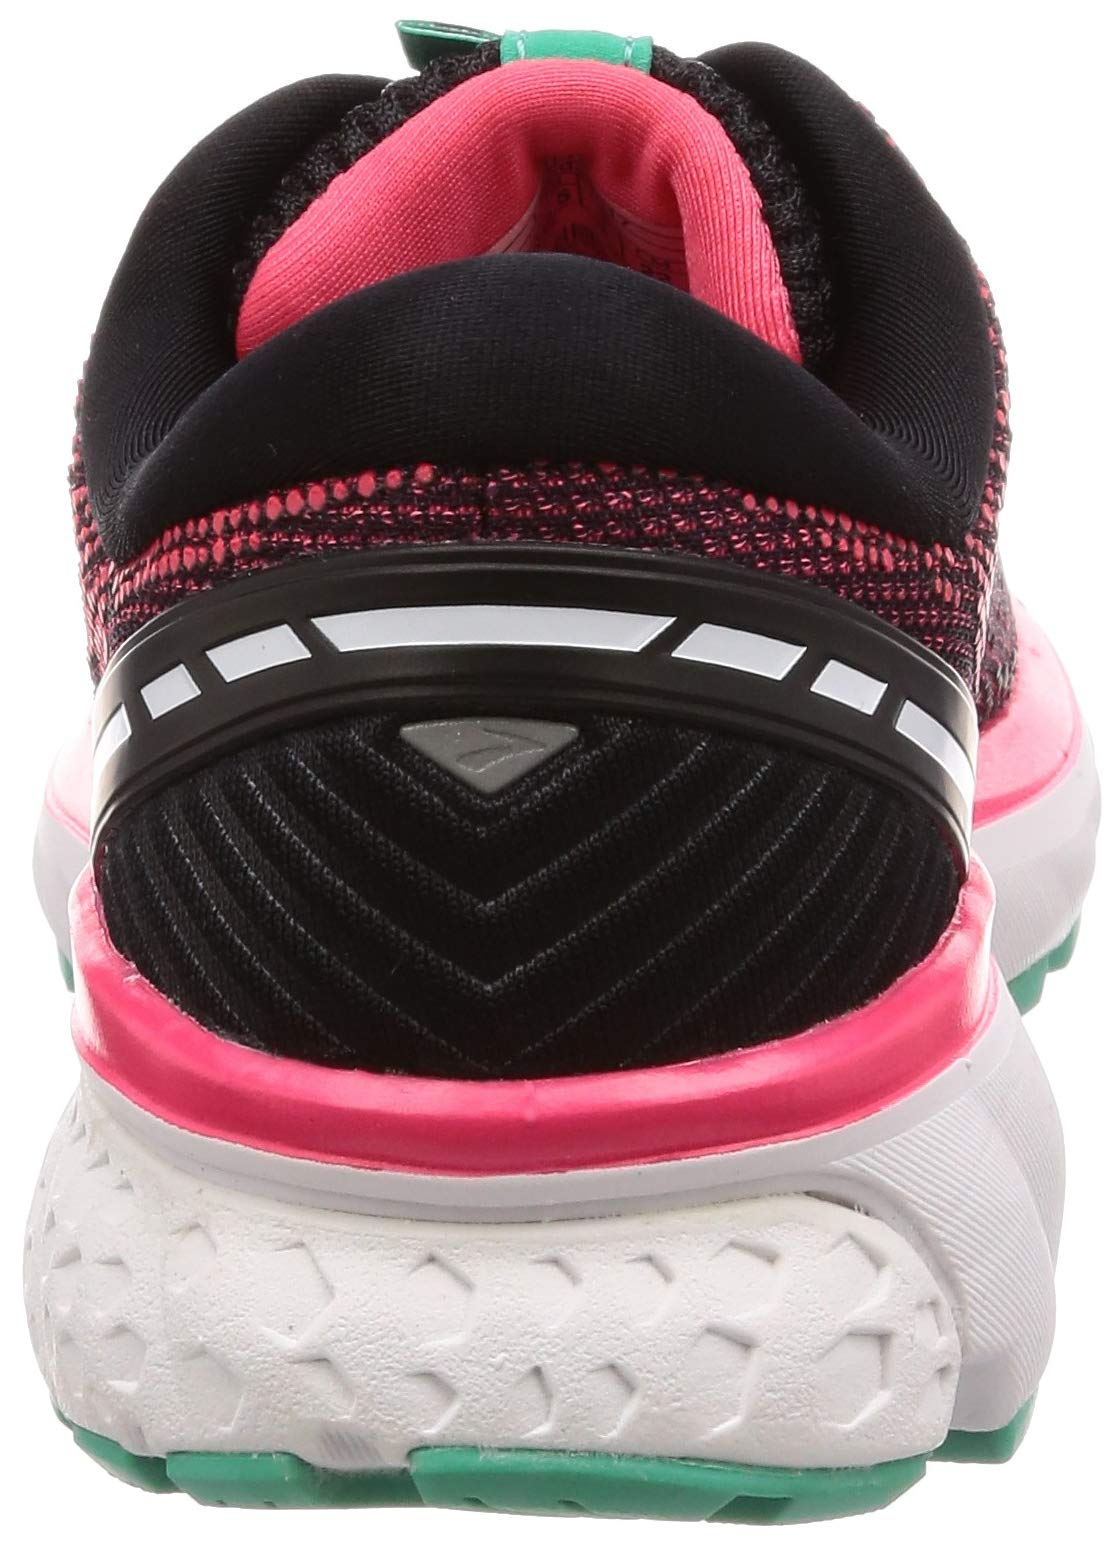 Brooks Womens Ghost 11 Running Shoe - Black/Pink/Aqua - D - 5.5 by Brooks (Image #2)